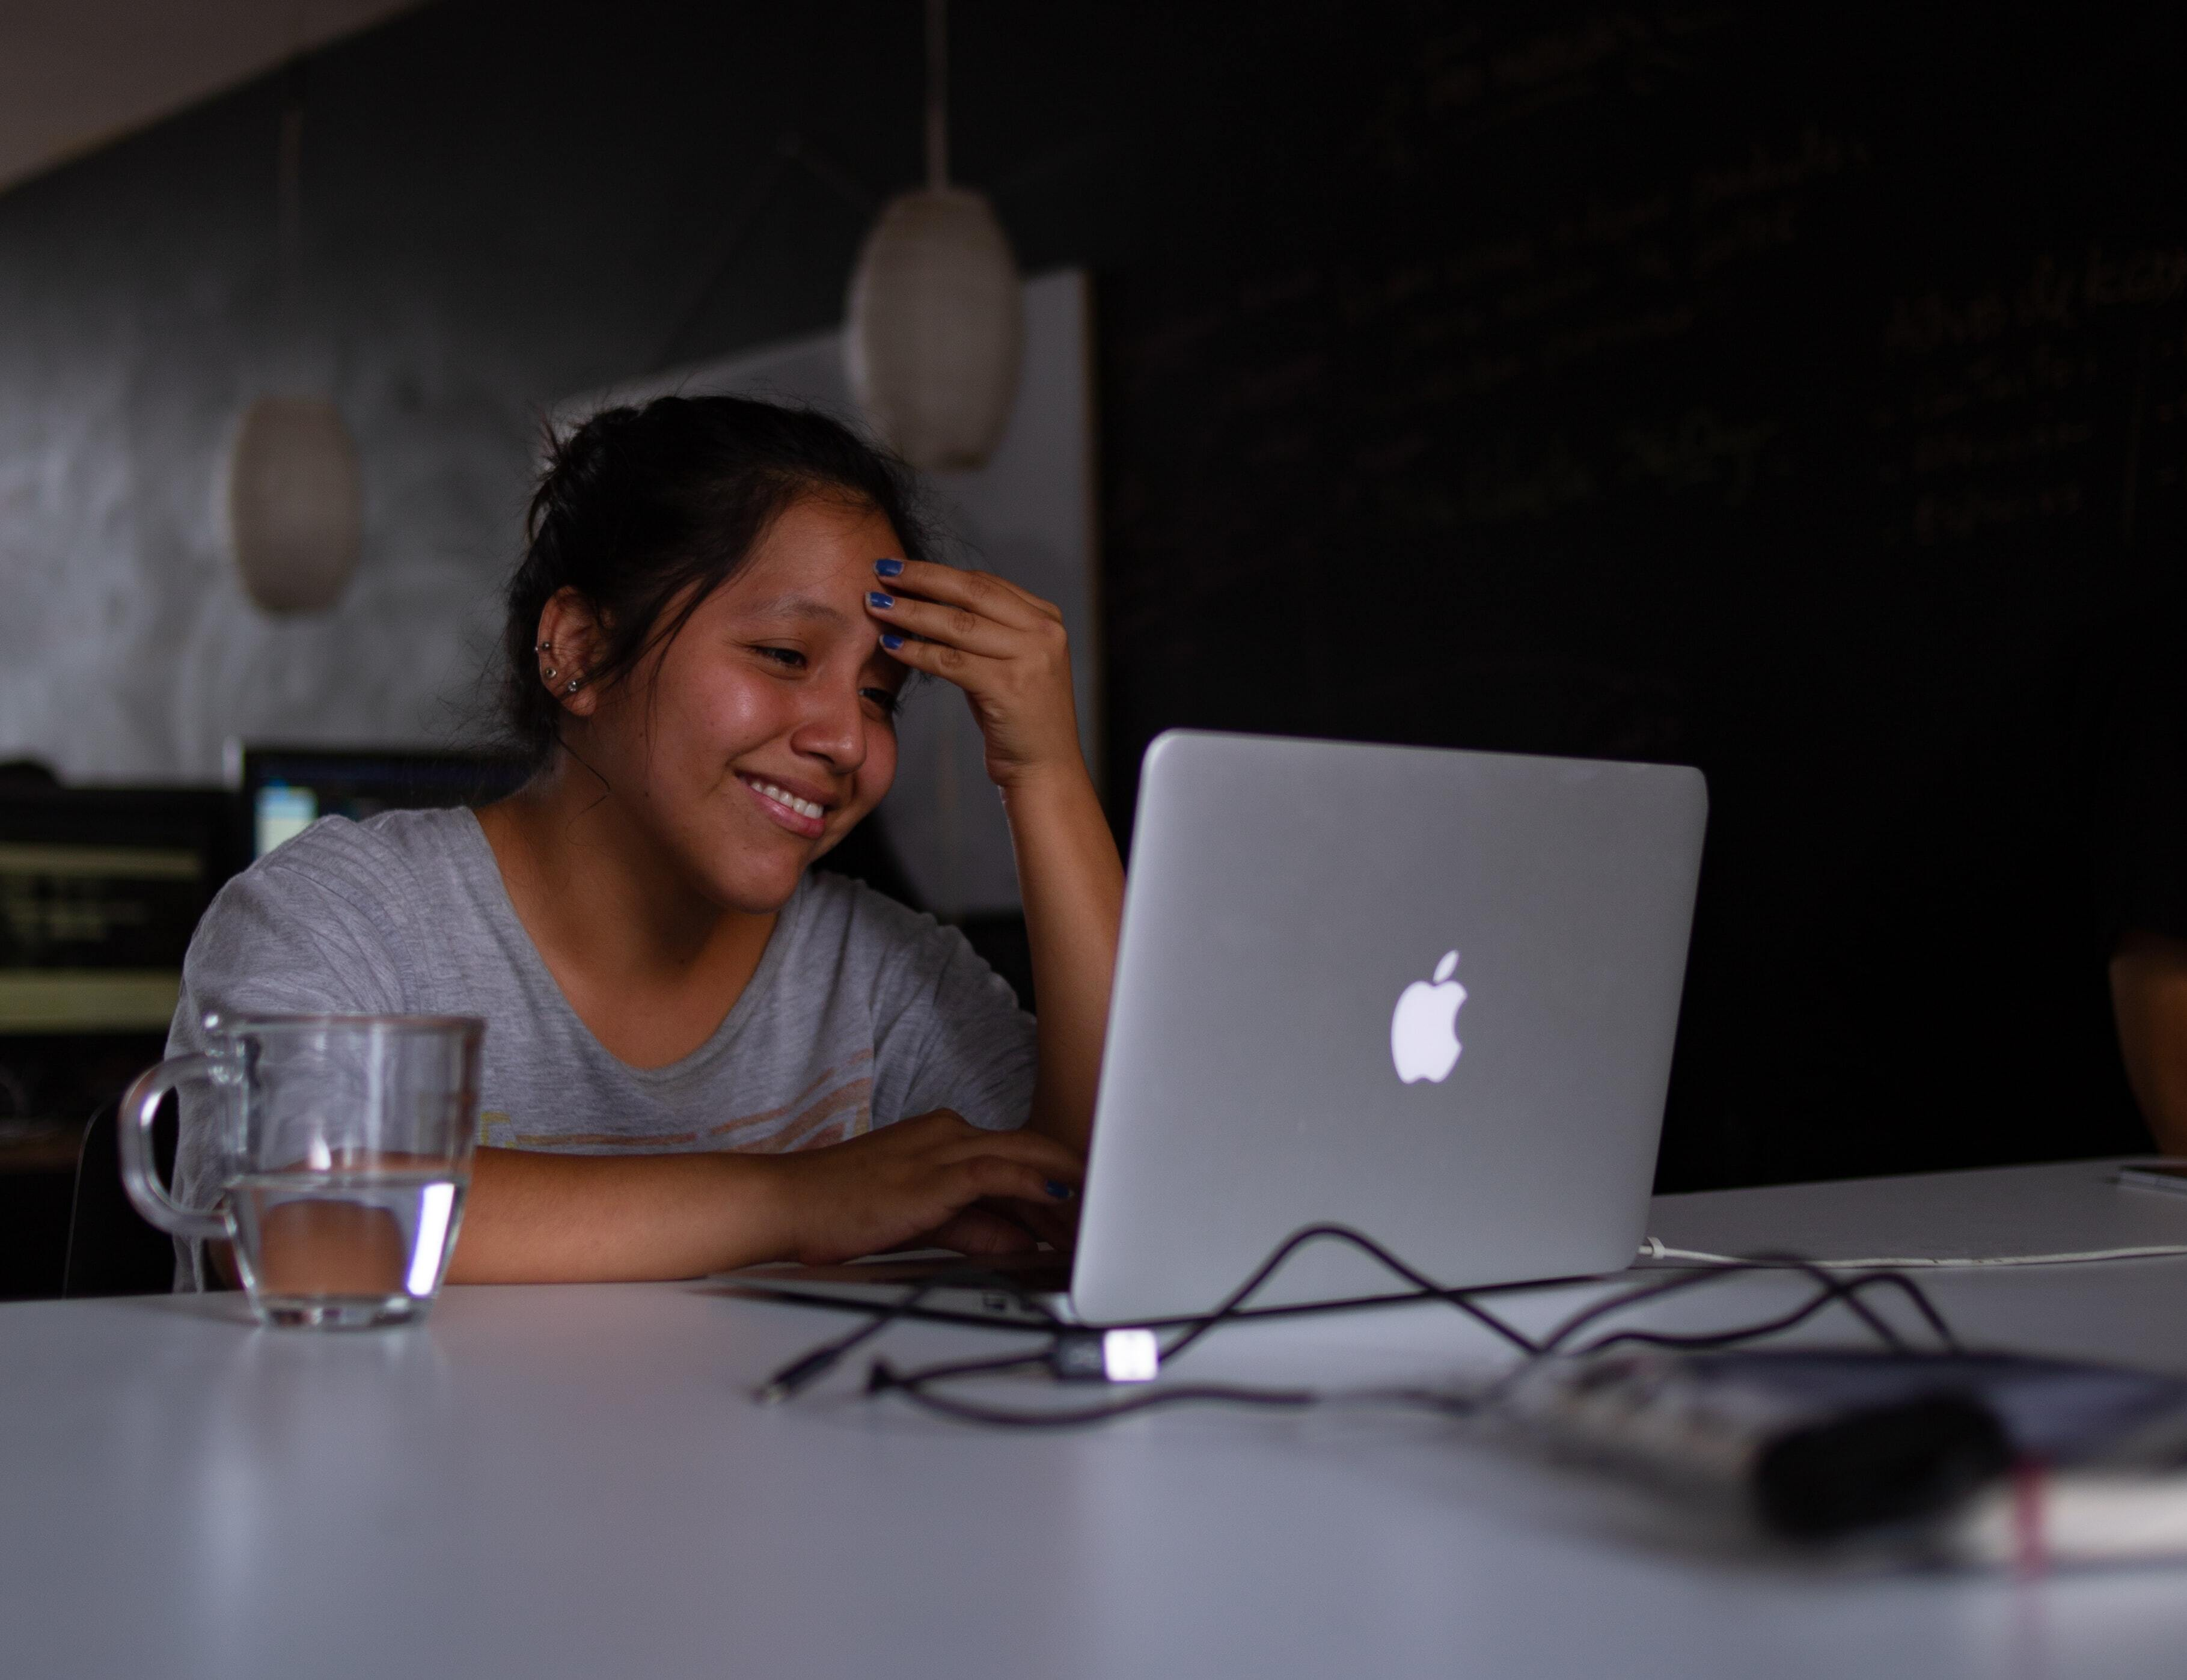 woman smiling while looking at computer